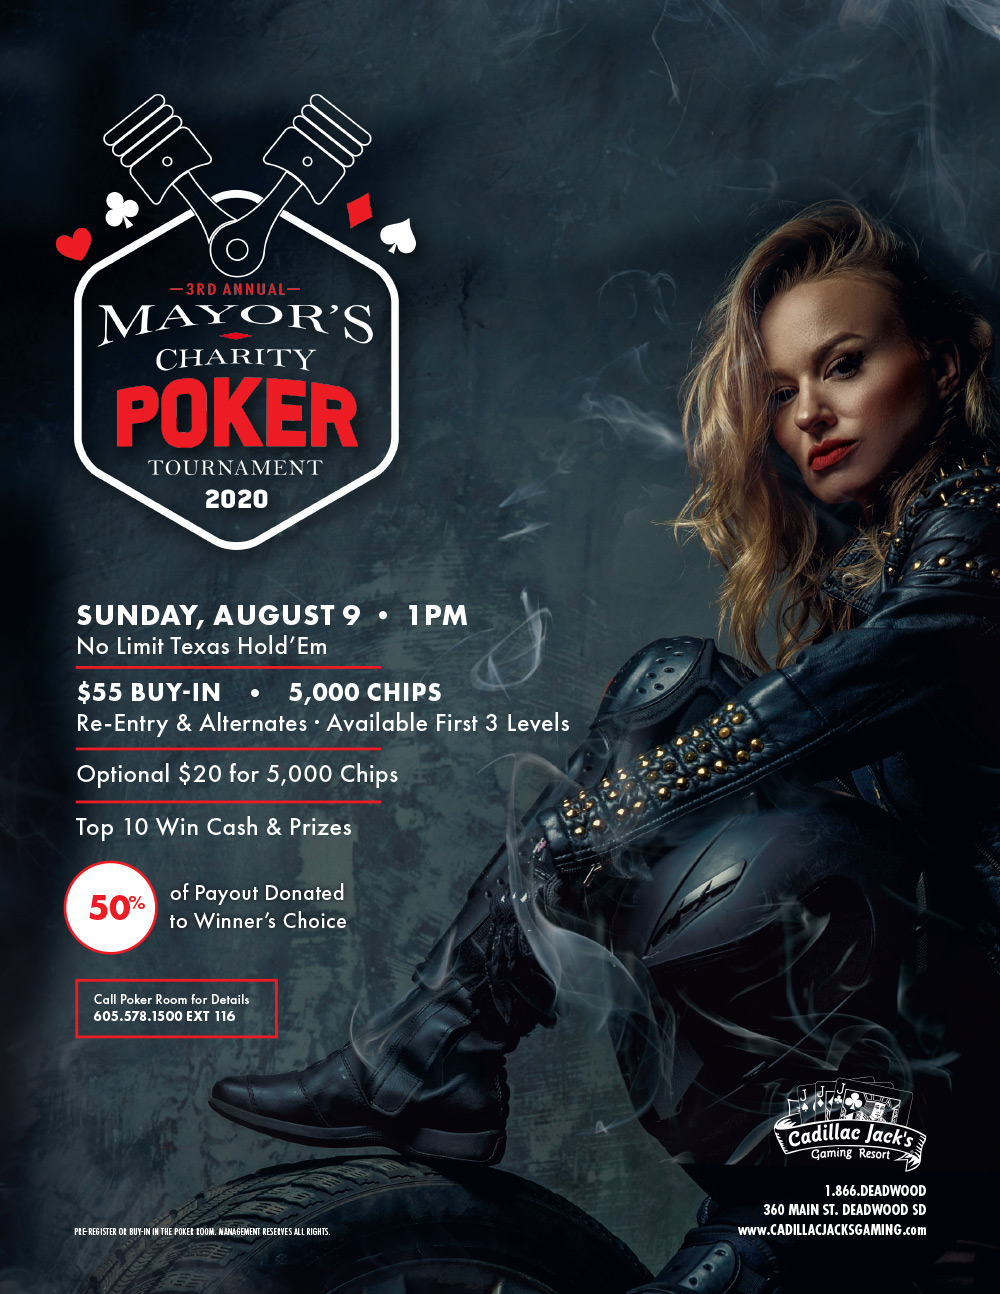 3rd Annual Mayor's Charity Poker Tournament 2020. Sunday, August 4, 1 PM. No Limit Texas Hold'em $55 Buy-in 5000 Chips. Re-entry and Alternates. Available First 3 Levels. Optional $20 for 5000 Chips. 50% of Payout Donated to Charity. Call Poker Room for Details 605-559-0157. Pre-register or buy-in in the poker room management reserves all rights.